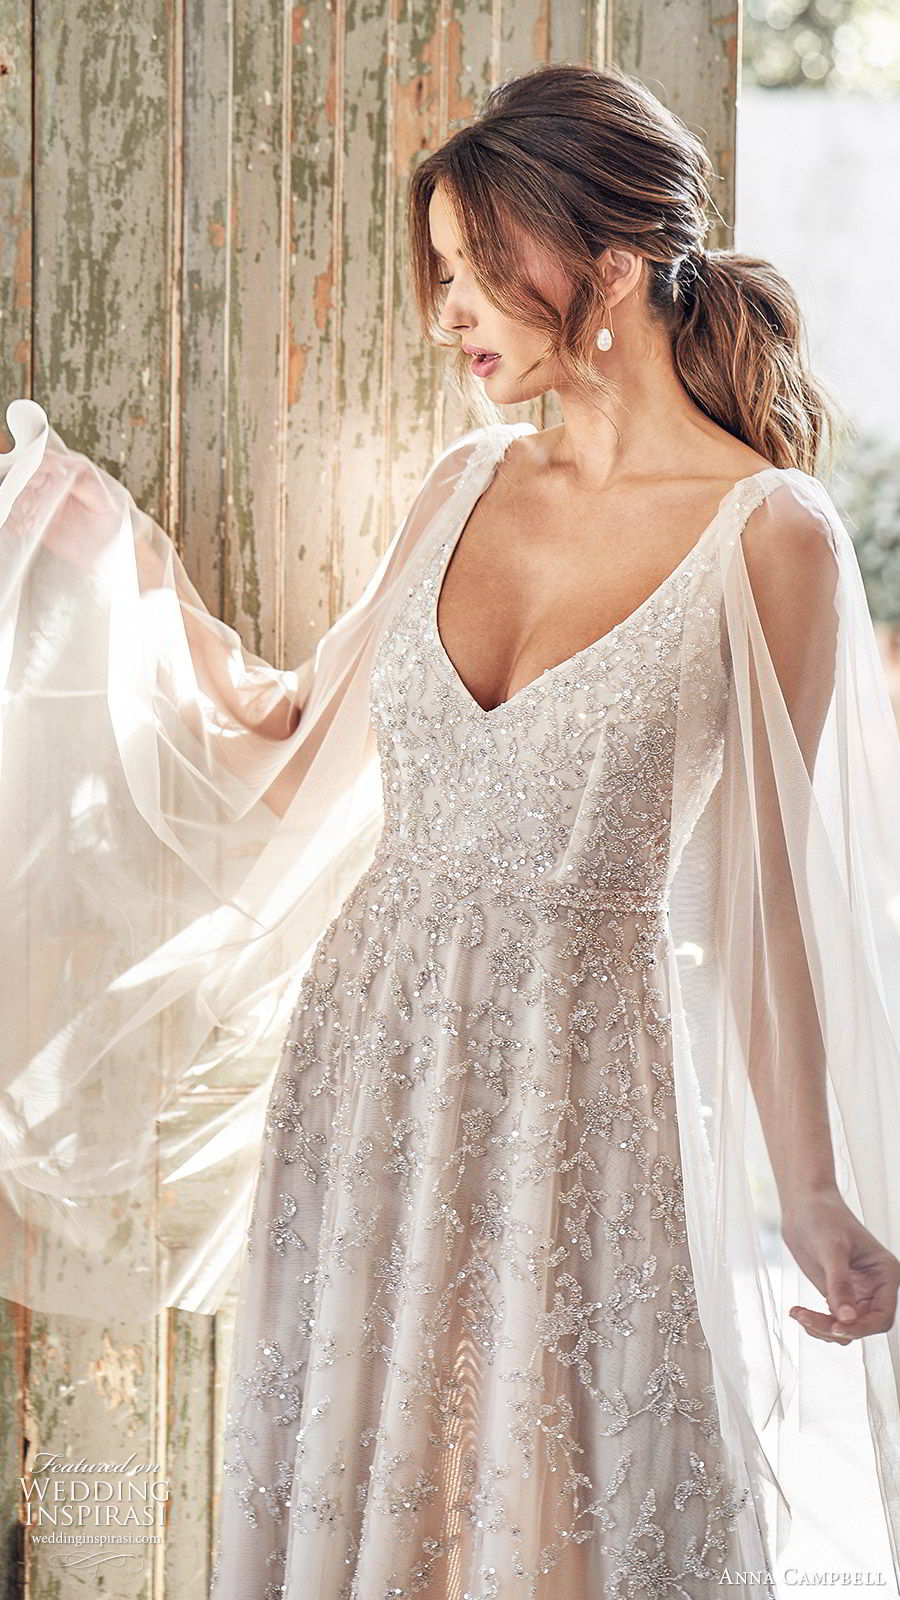 anna campbell 2020 bridal illusion flare sleeves thick straps fully embellished ball gown a line wedding dress (4) romantic glitzy blush color chapel train zv